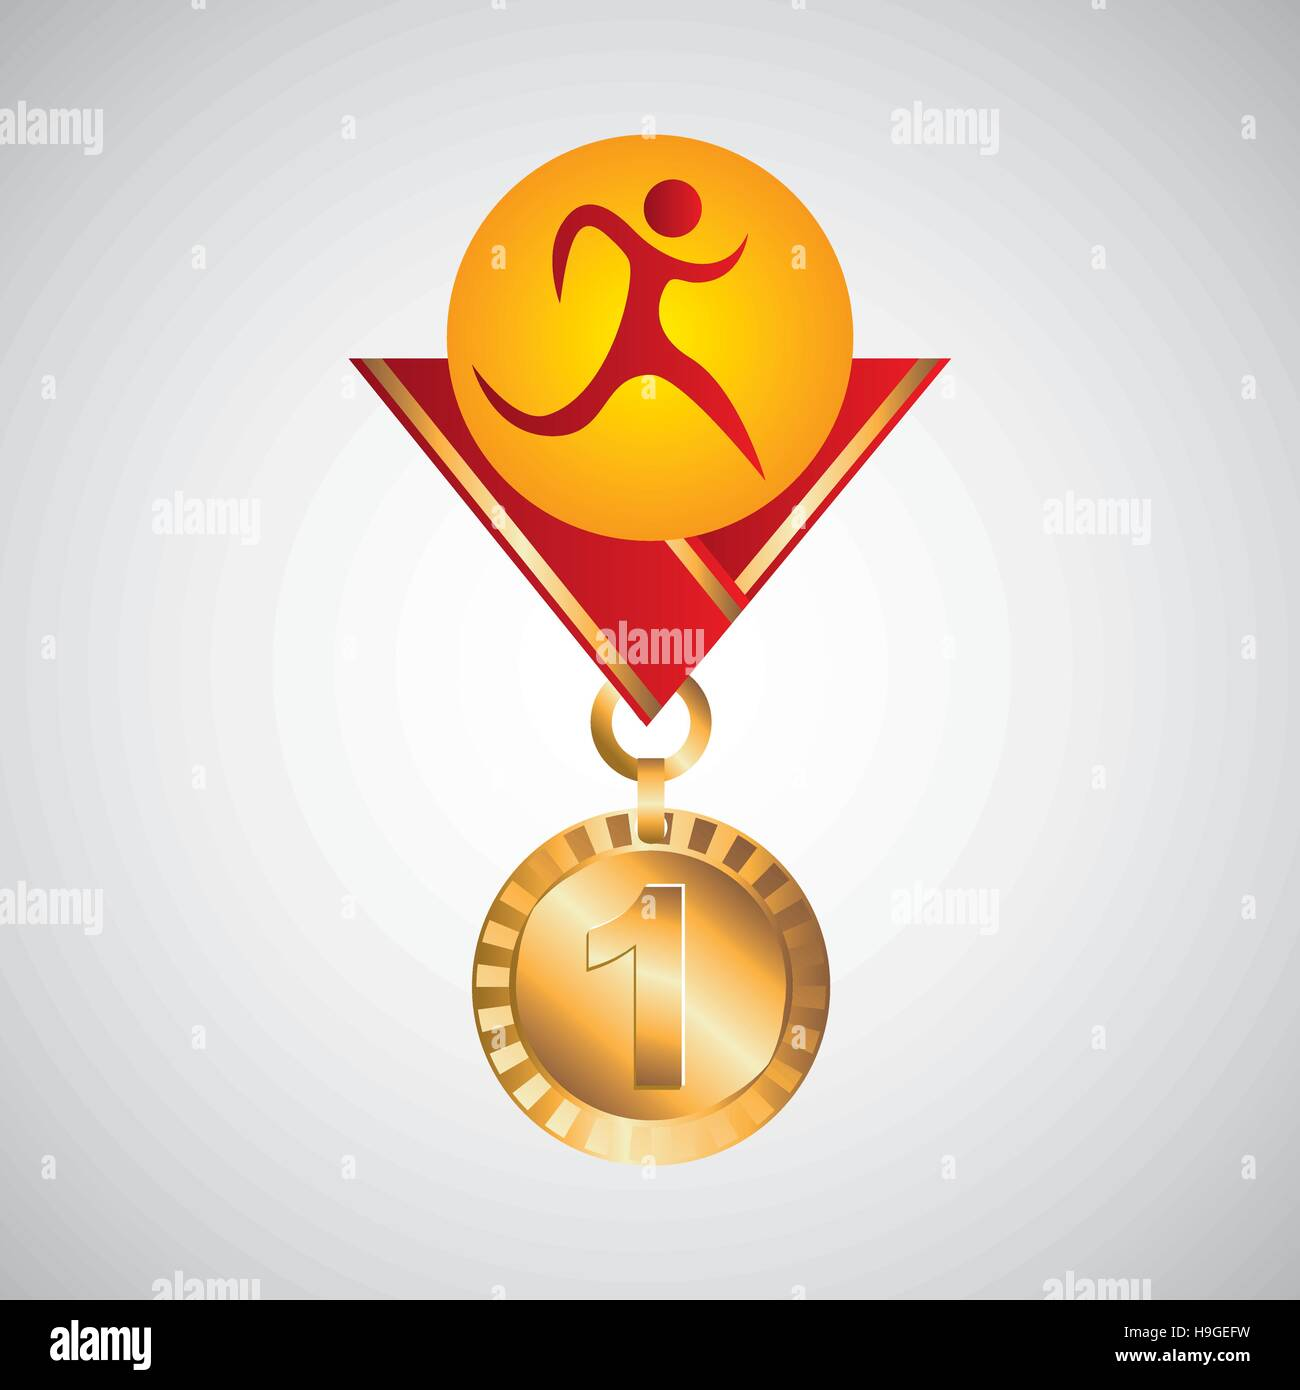 olympic gold medal athletics icon vector illustration eps 10 - Stock Vector